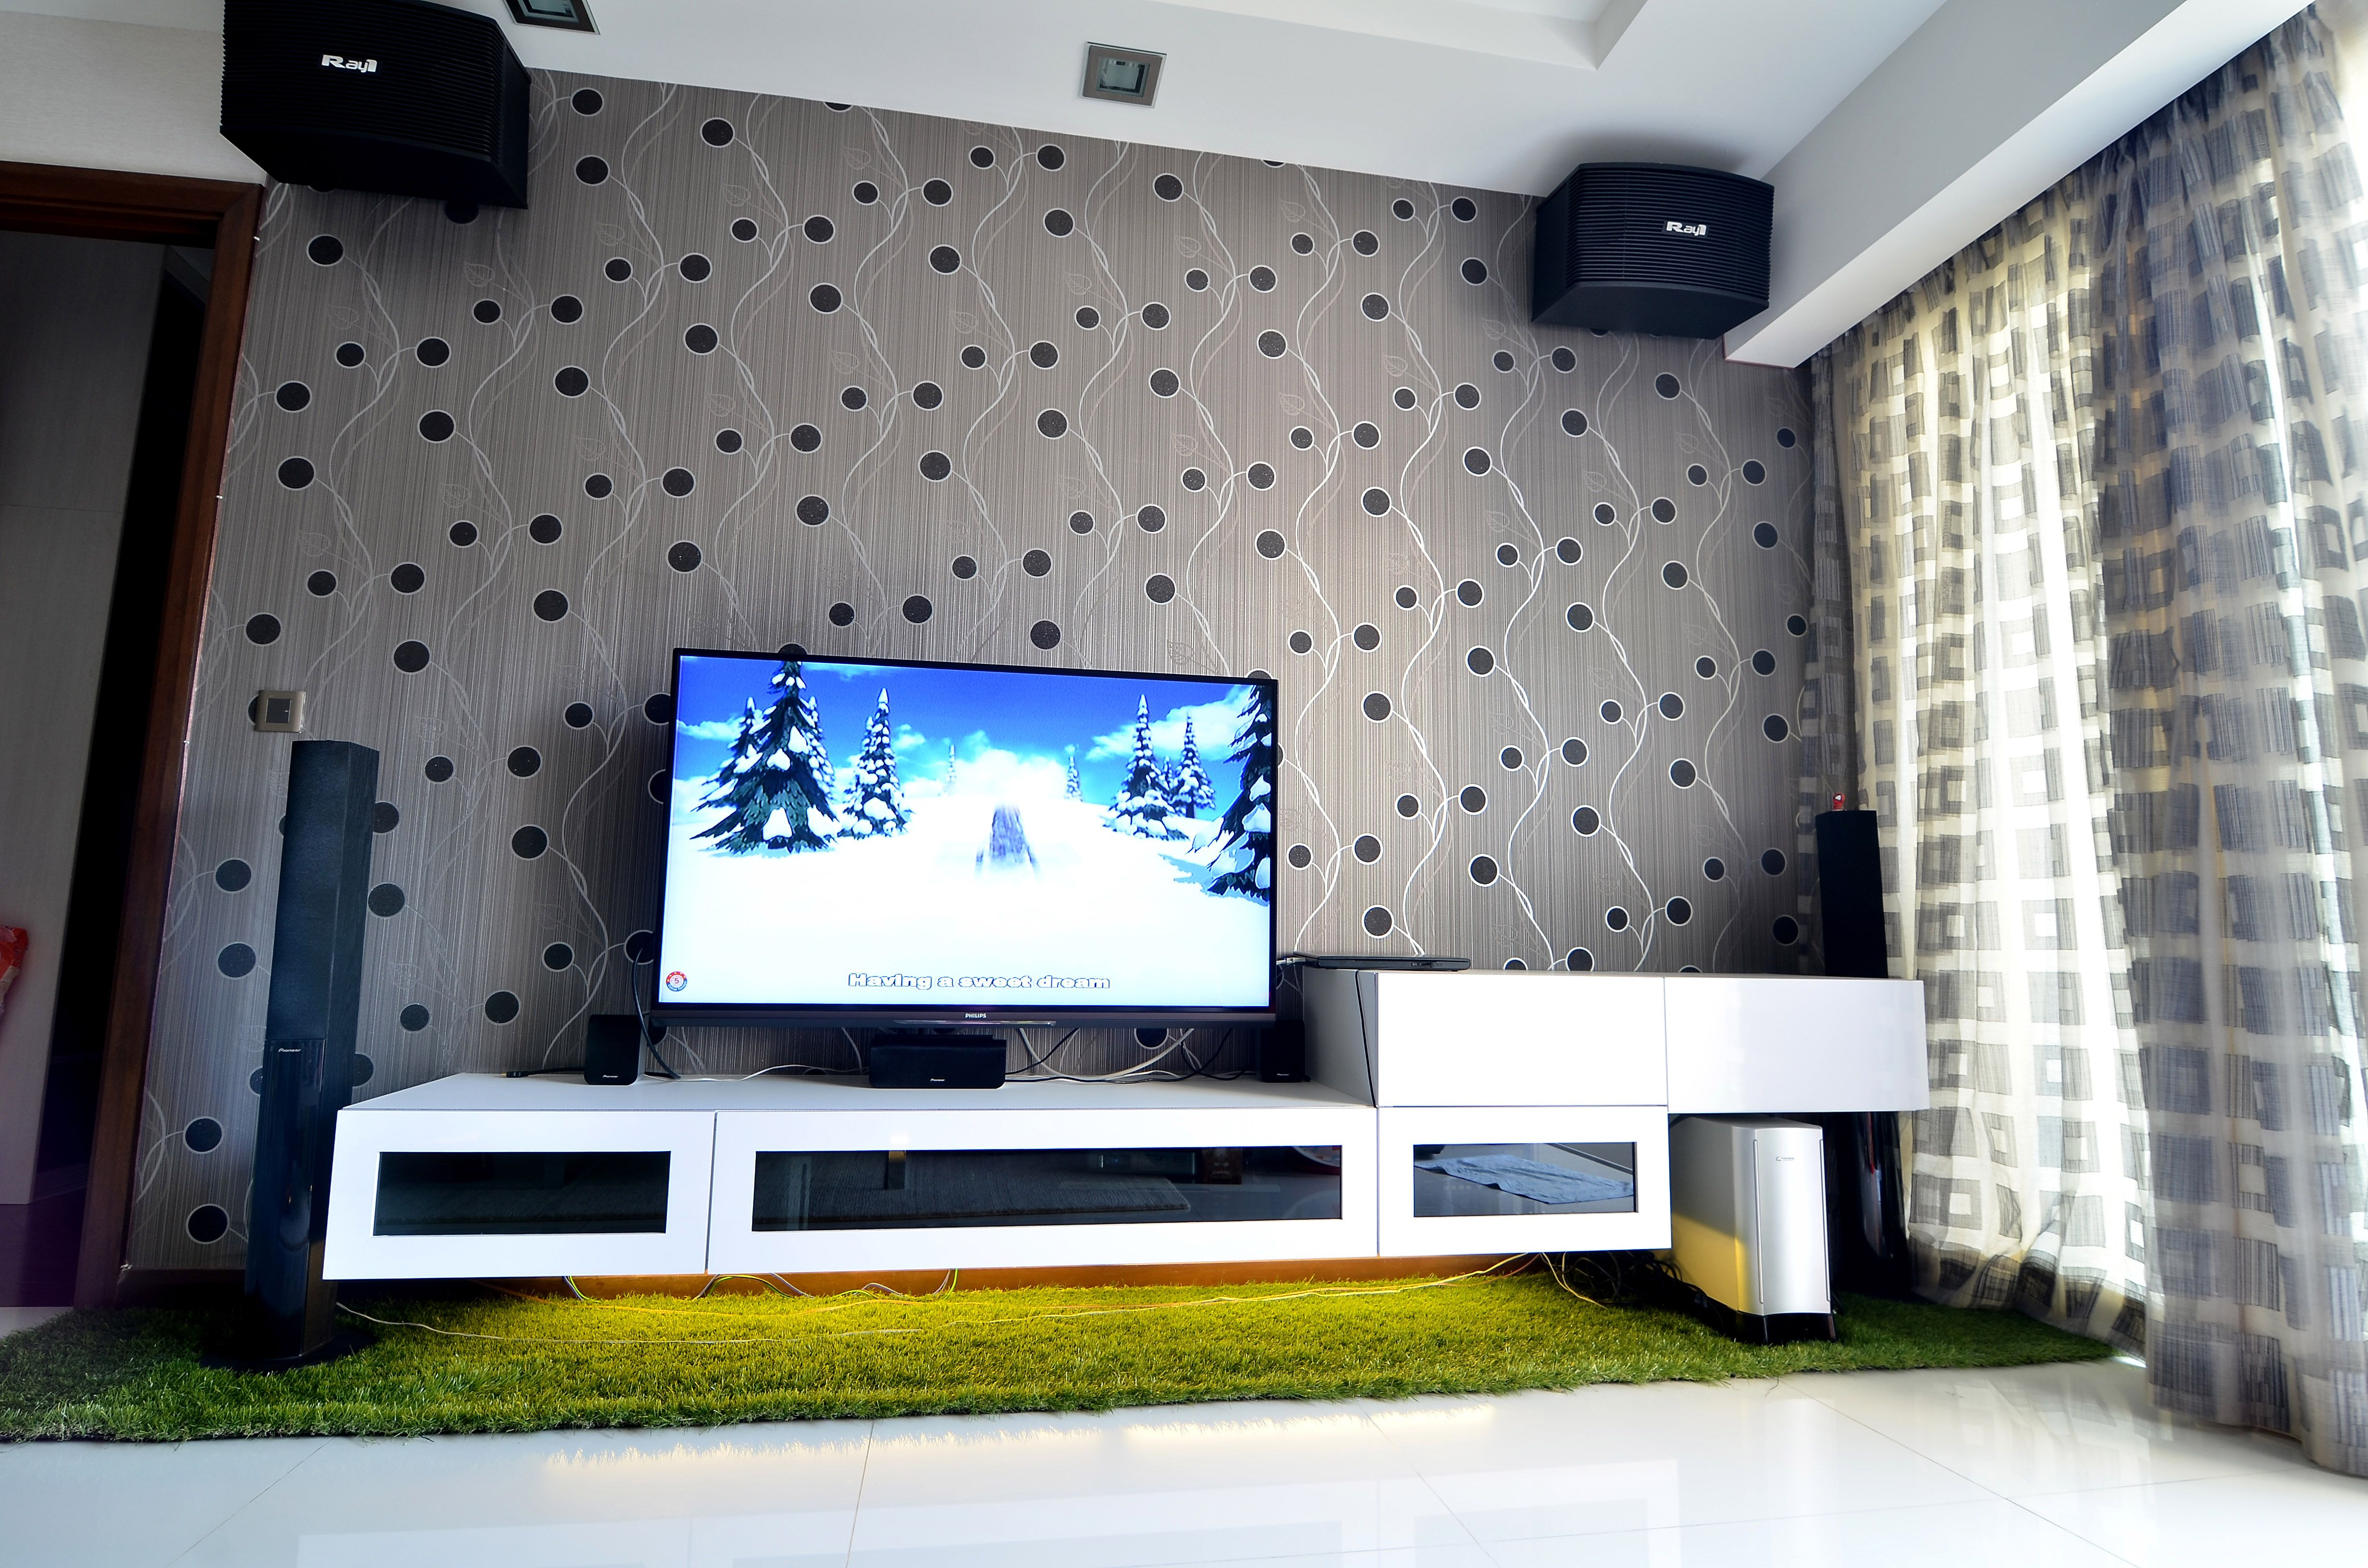 White Living Room Cabinets Tv Cabinet White Livingroom Wallpaper Grass Interiordesign